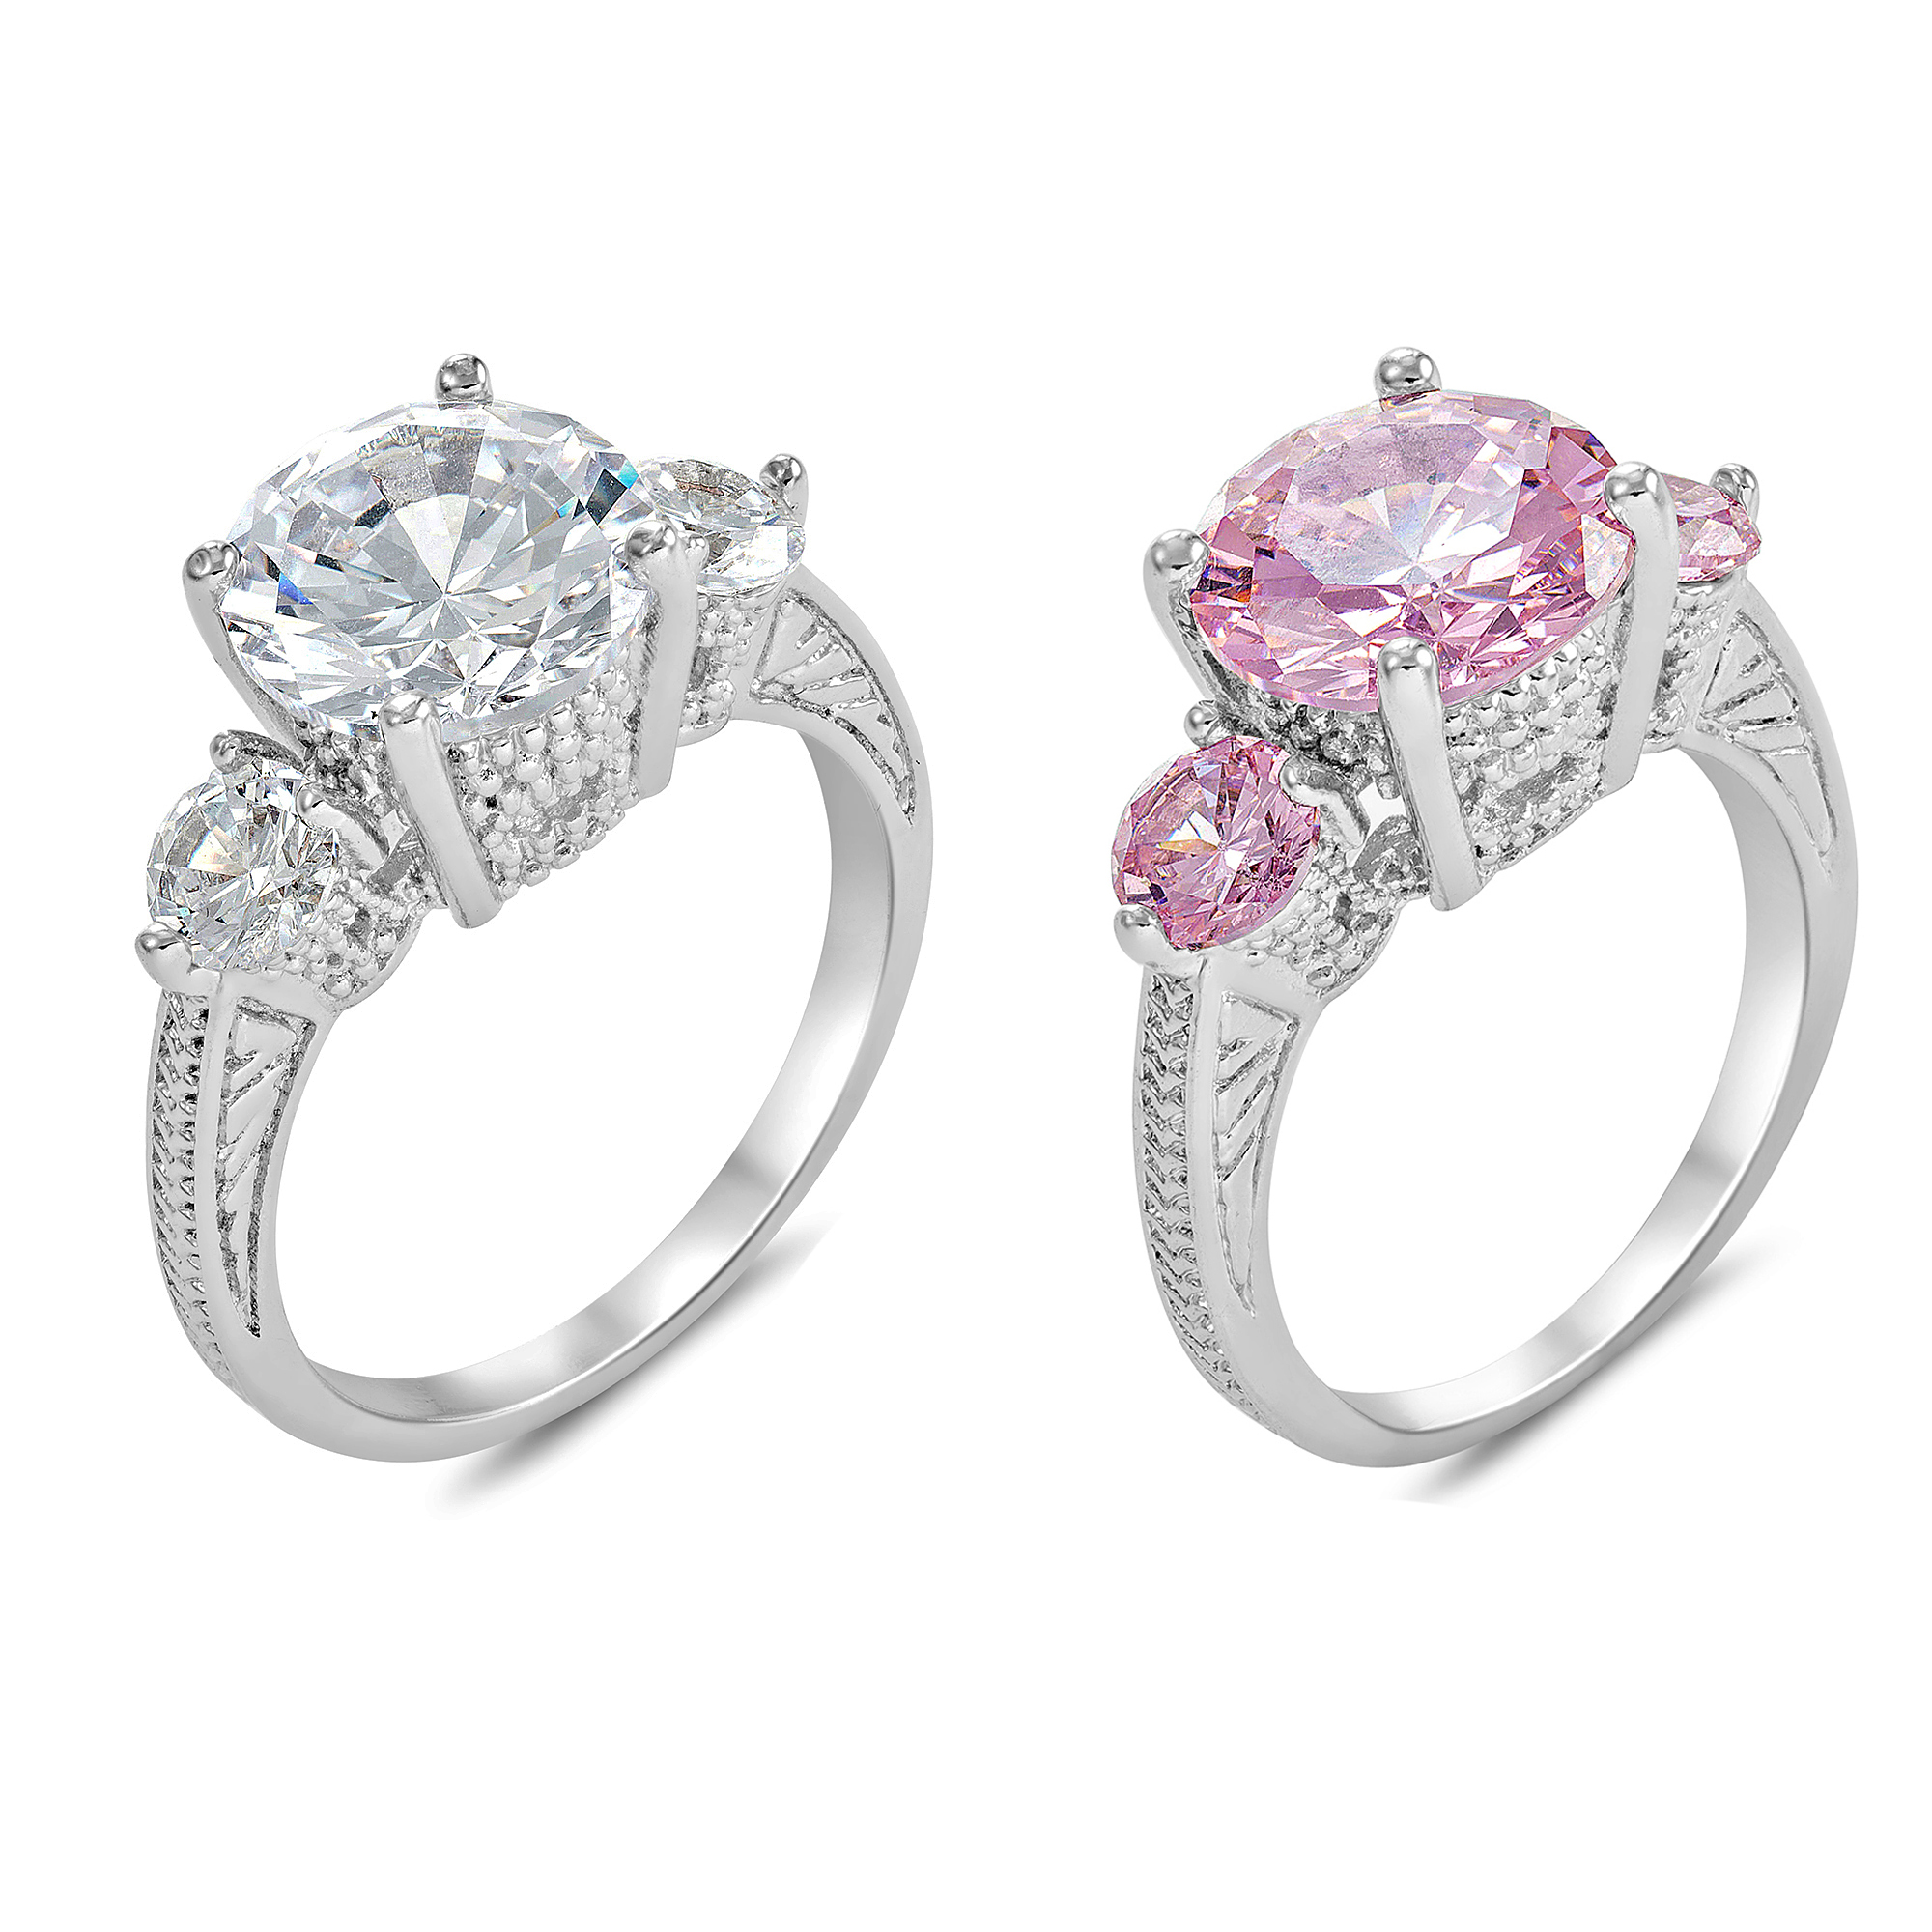 40pc Crystal Clear & Pink Cubic Zirconia Rings Size & Colour Variation (4 sizes, 5Pcs for each size, two colours)/GCJ027028)